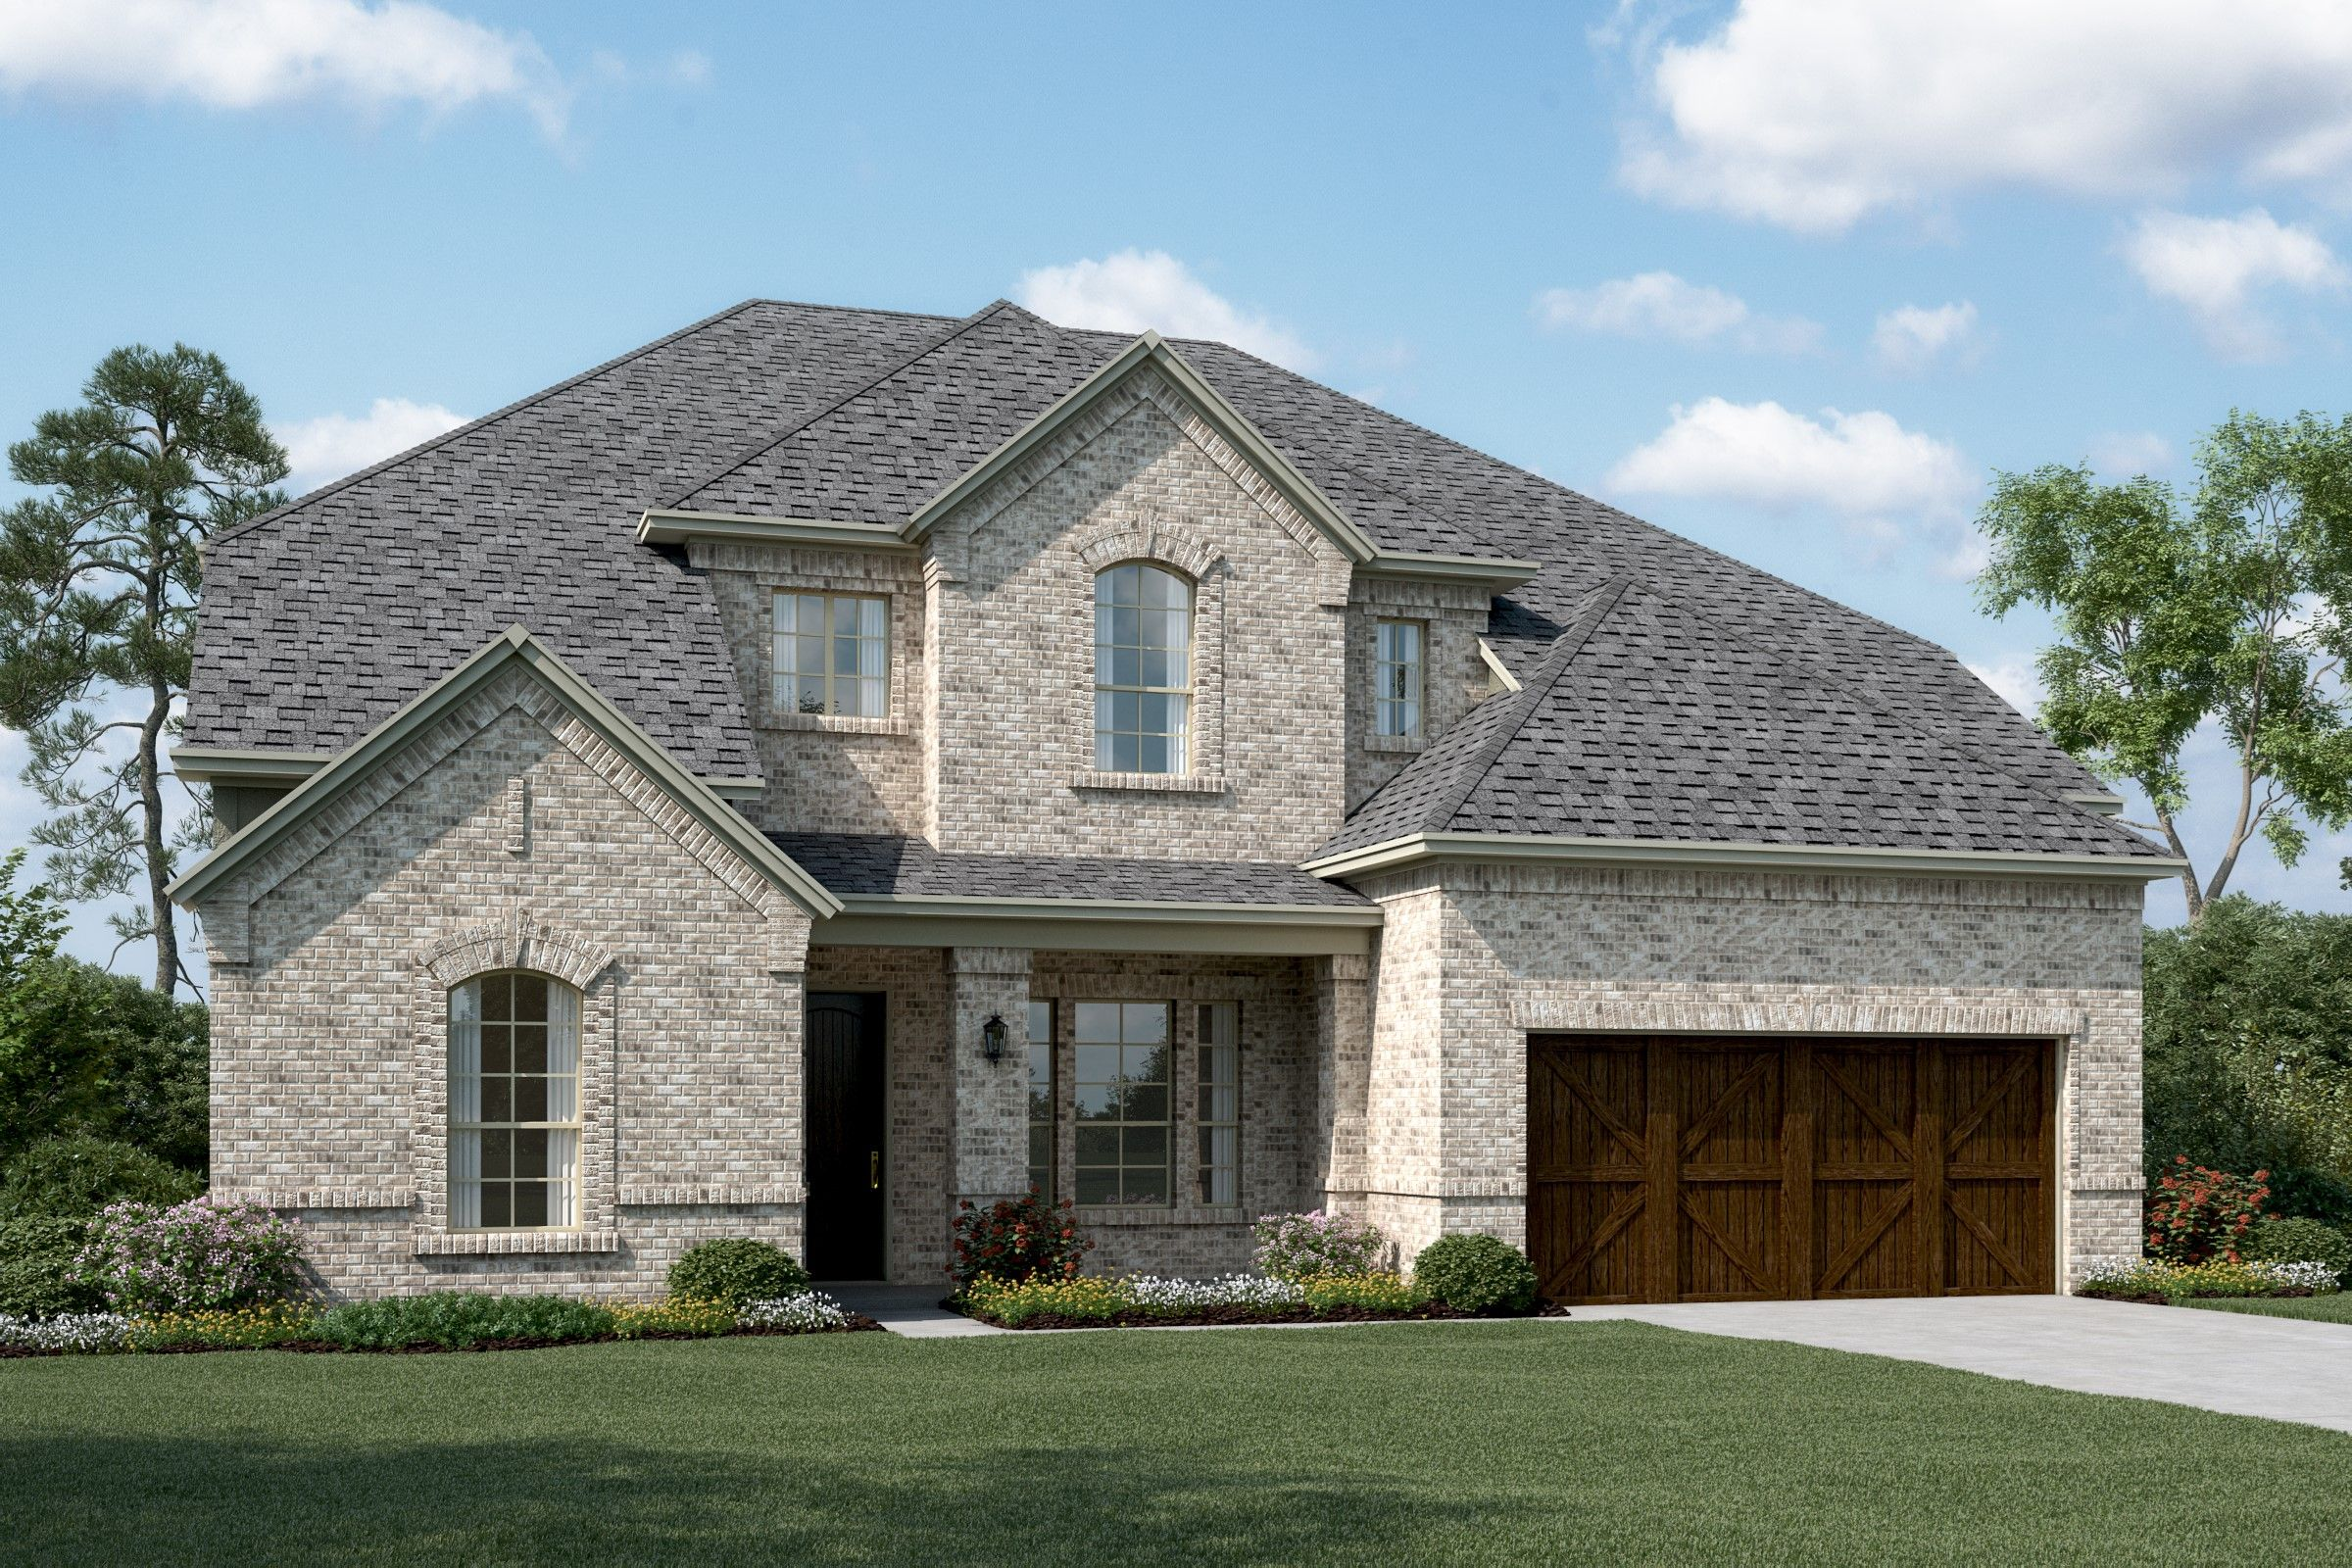 Single Family for Active at Bluff Creek Estates - Graystone Iii - Villas 828 Anderetti Drive Murphy, Texas 75094 United States